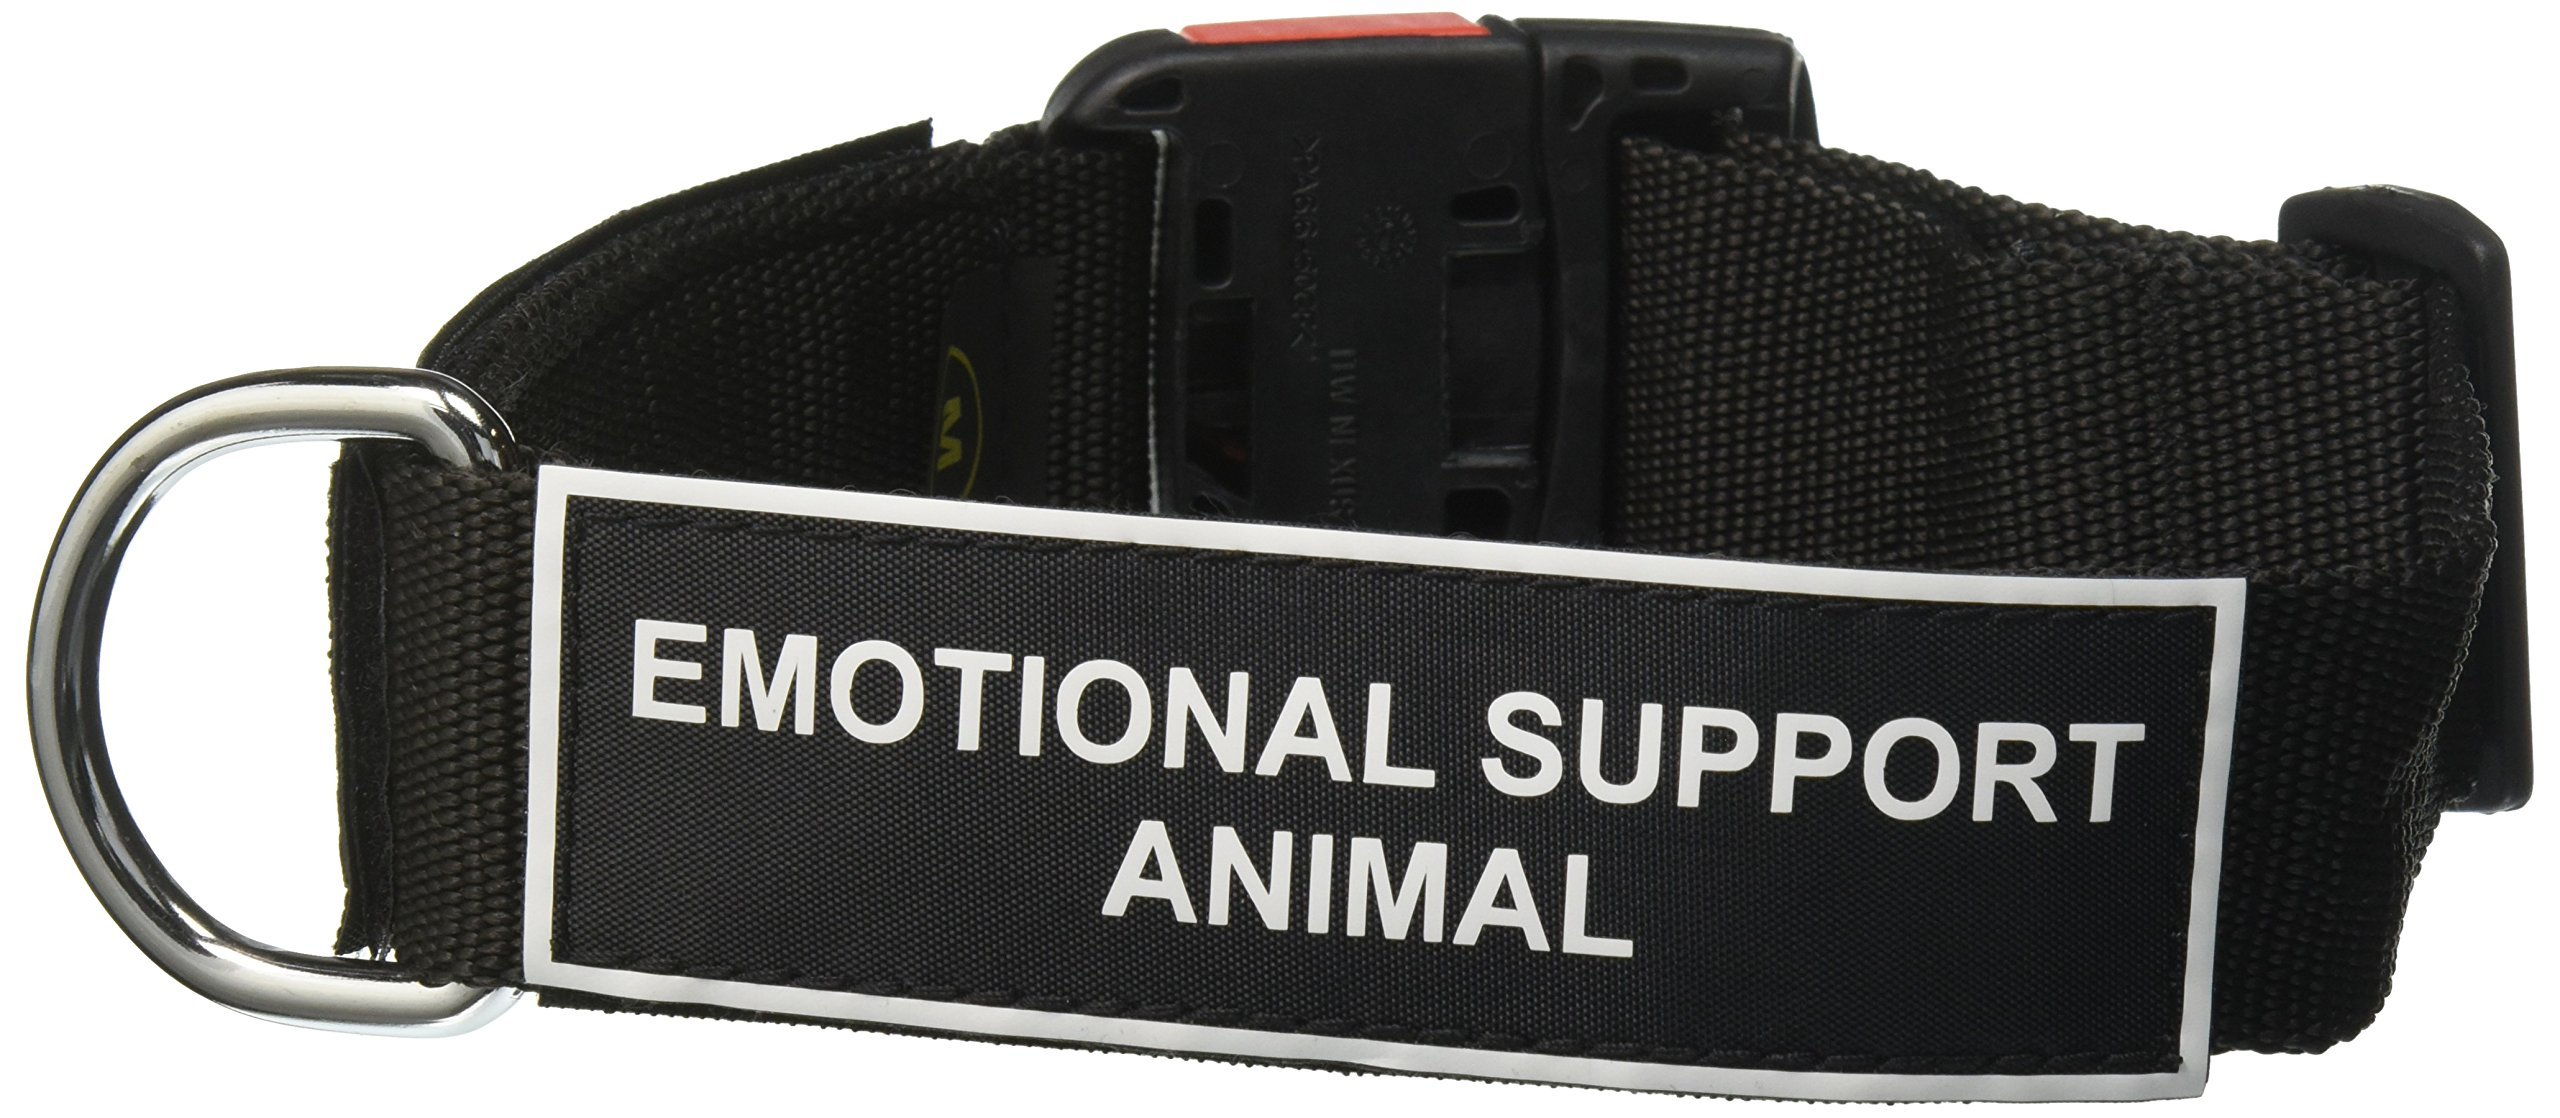 Dean and Tyler ''Patch Collar'', Nylon Dog Collar with EMOTIONAL SUPPORT ANIMAL Patches - Black - Size: Medium - Fits Neck 21-Inch to 26-Inch